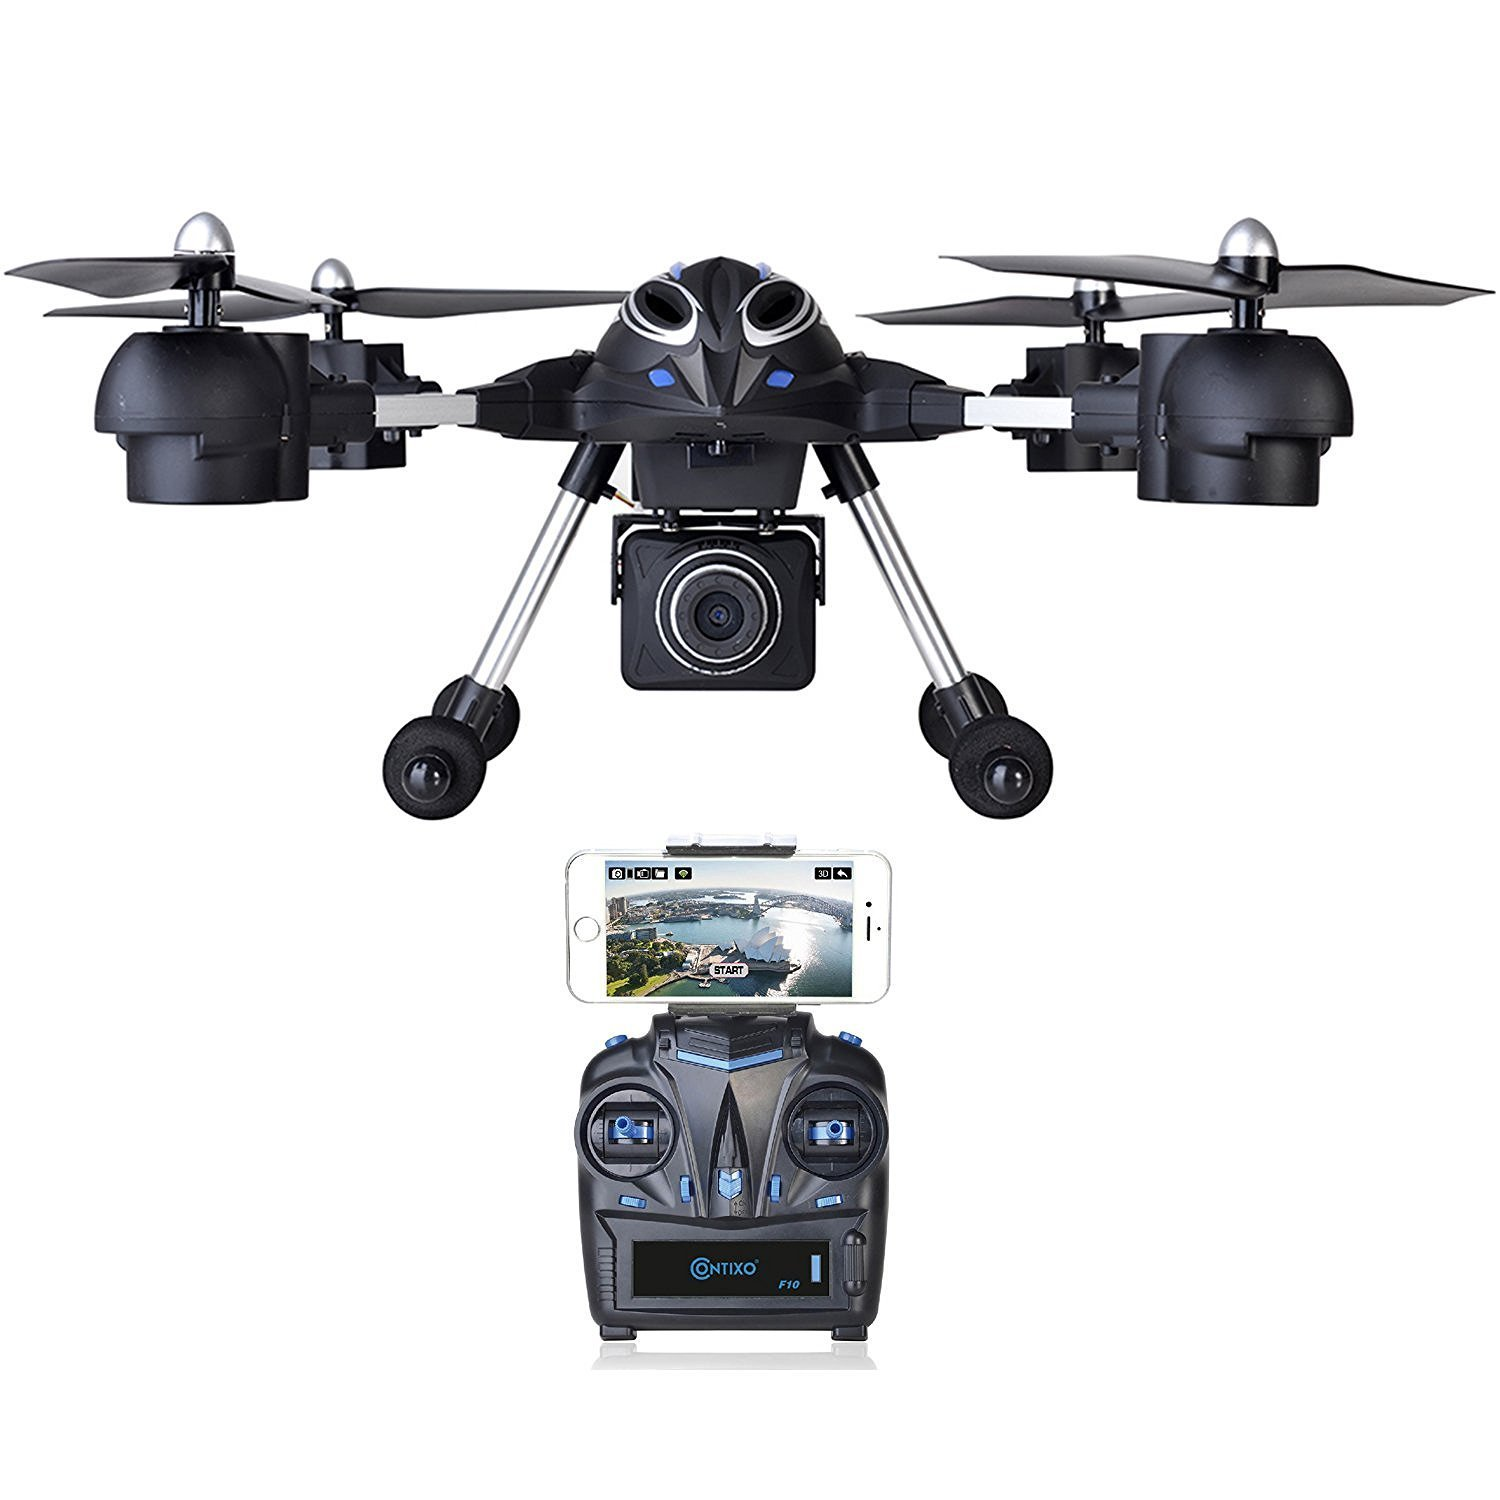 Contixo F10 Quadcopter RC Drone, 4 Channel, 2.4GHz, 6 Axis Gyro RTF, Support GoPro HERO Cameras (WiFi HD Camera Included, FPV Monitor Included)